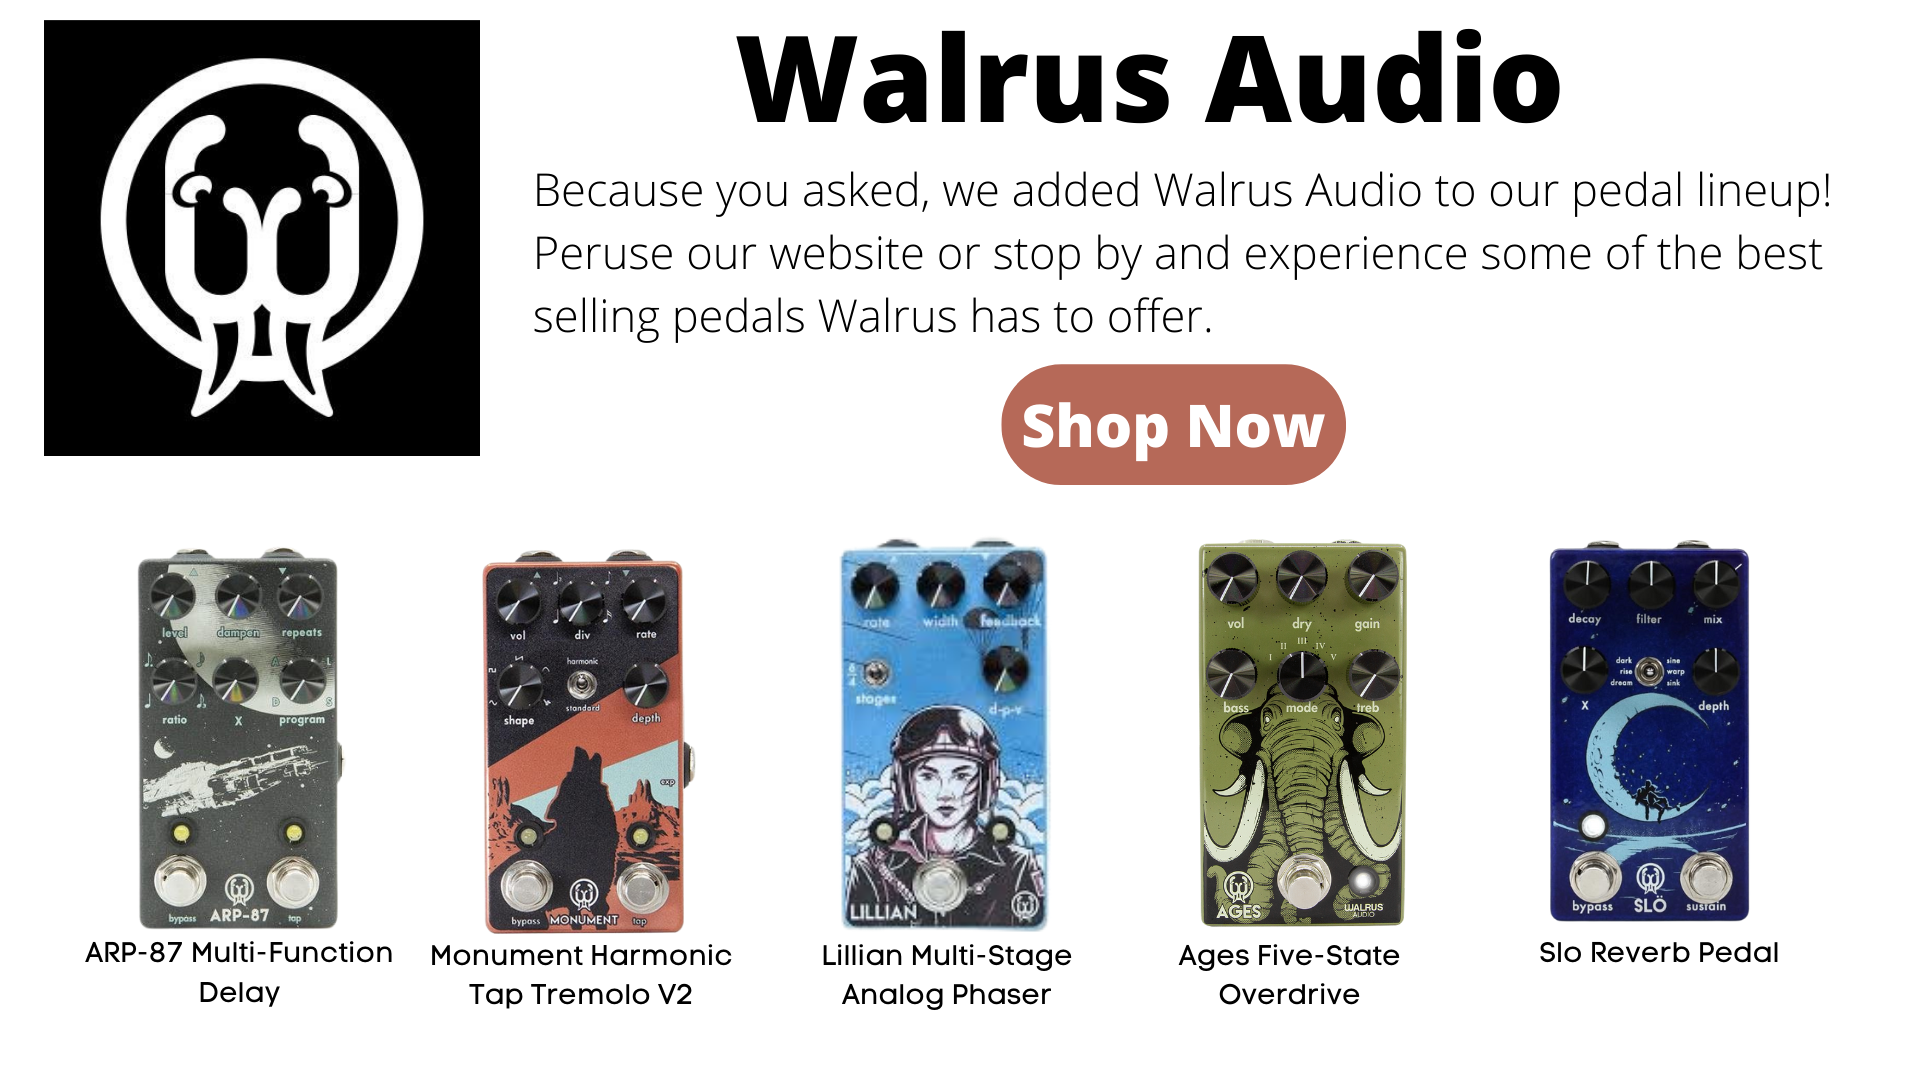 Walrus Audio Pedals. Slo, Ages, Lillian, Arp-87, Monument. Overdrive, delay, rebverb, phaser.